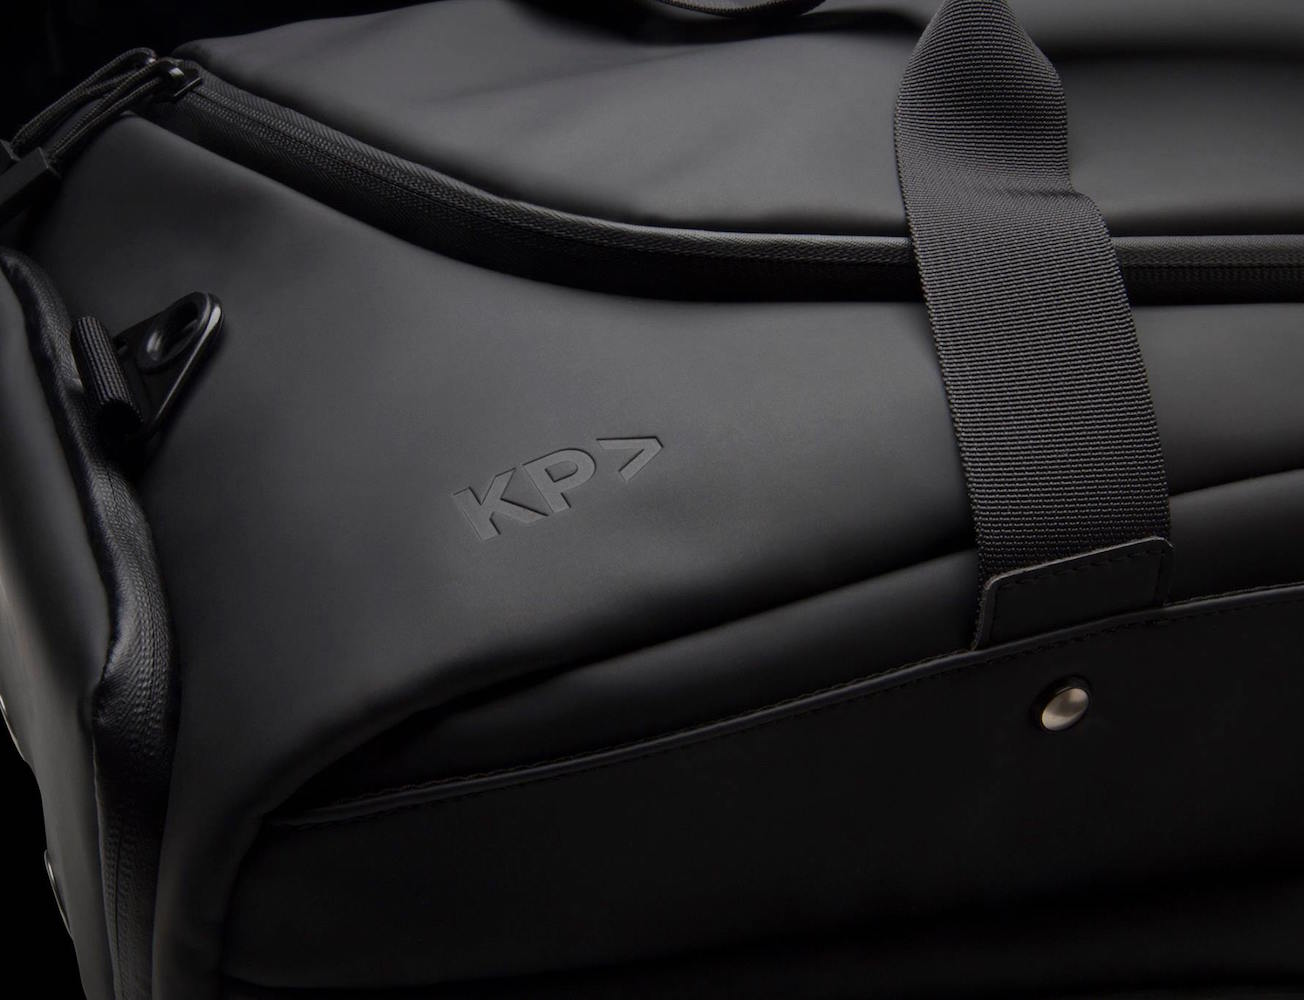 KP Duffle – The Ultimate Travel Bag